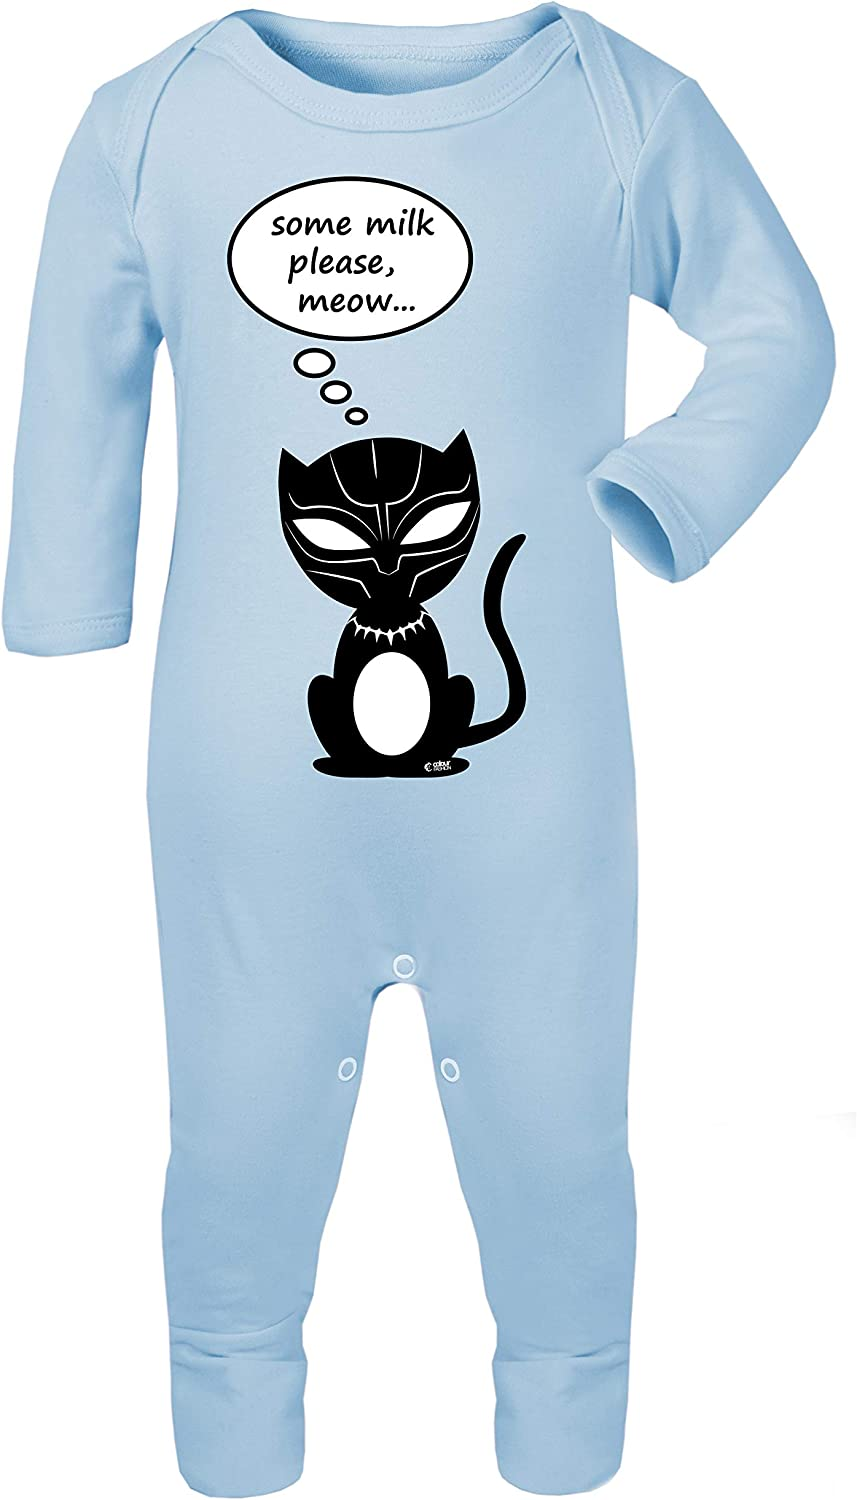 Colour Fashion Black Panther Some Milk Please Funny Print Baby Footies Sleep /& Play 100/% Cotton